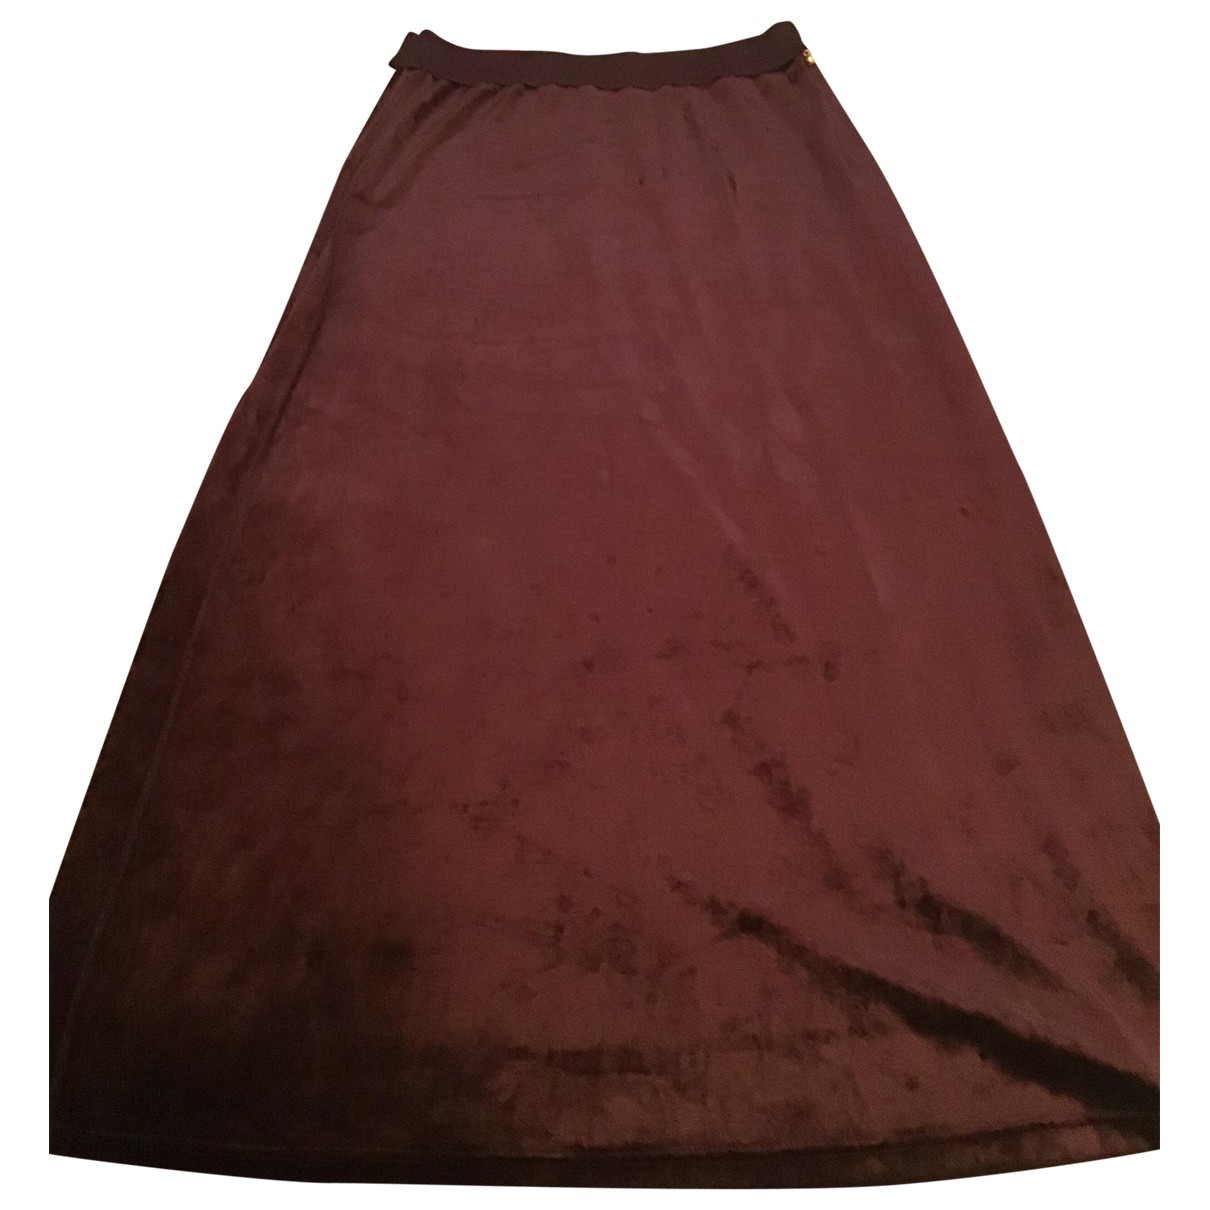 Sonia Rykiel \N Brown Velvet skirt for Women 38 FR